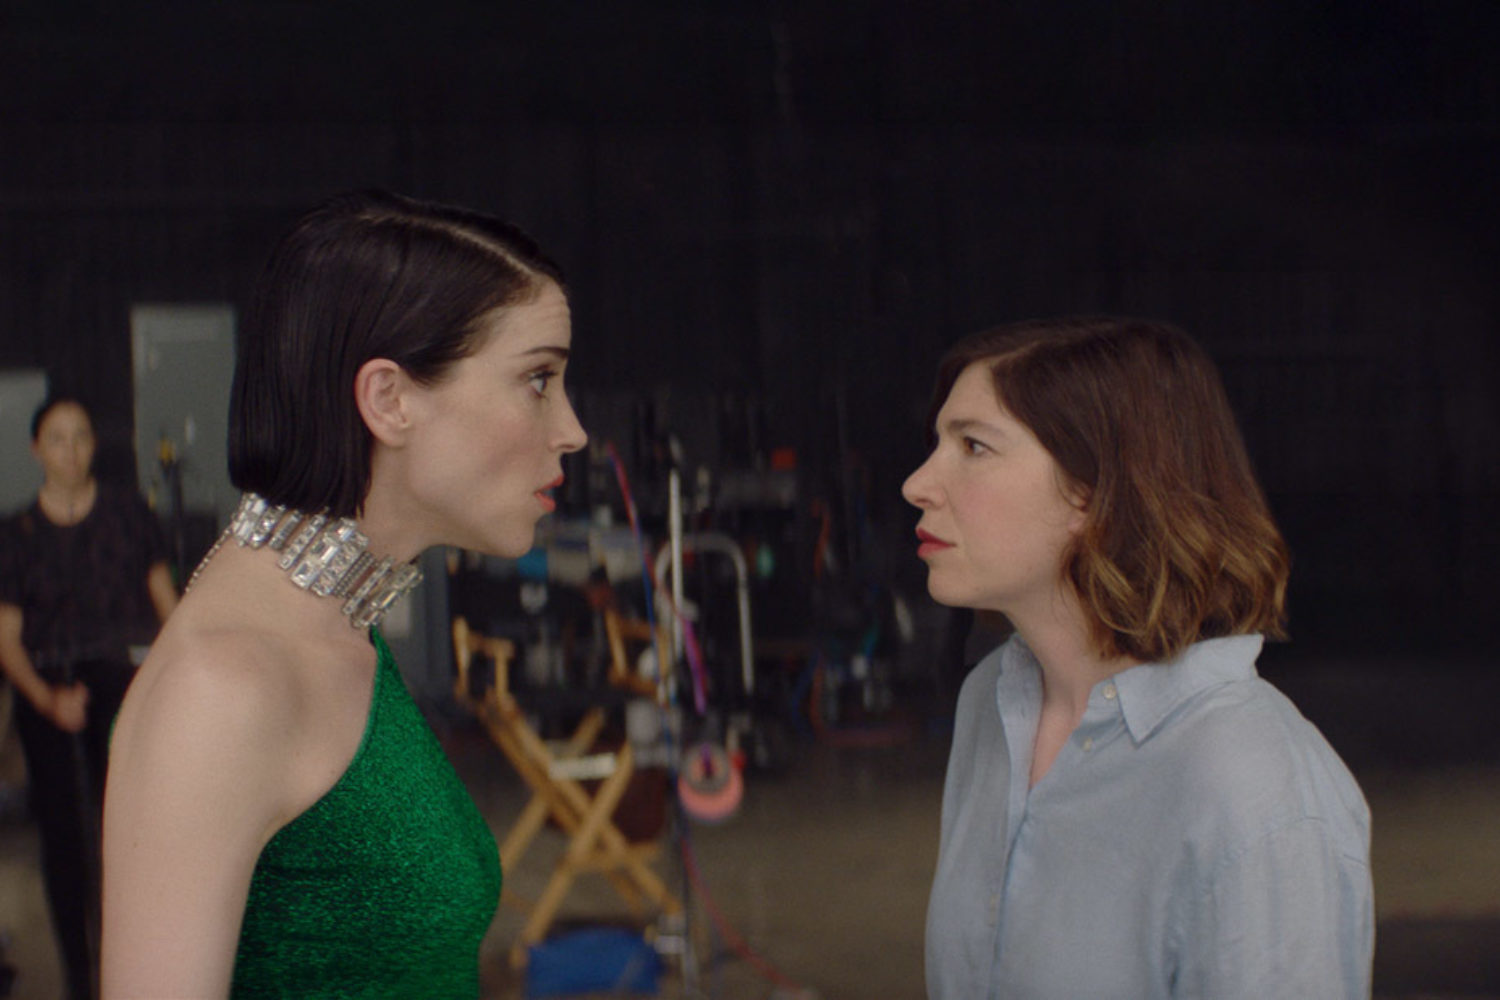 St. Vincent and Carrie Brownstein star in 'The Nowhere Inn' trailer